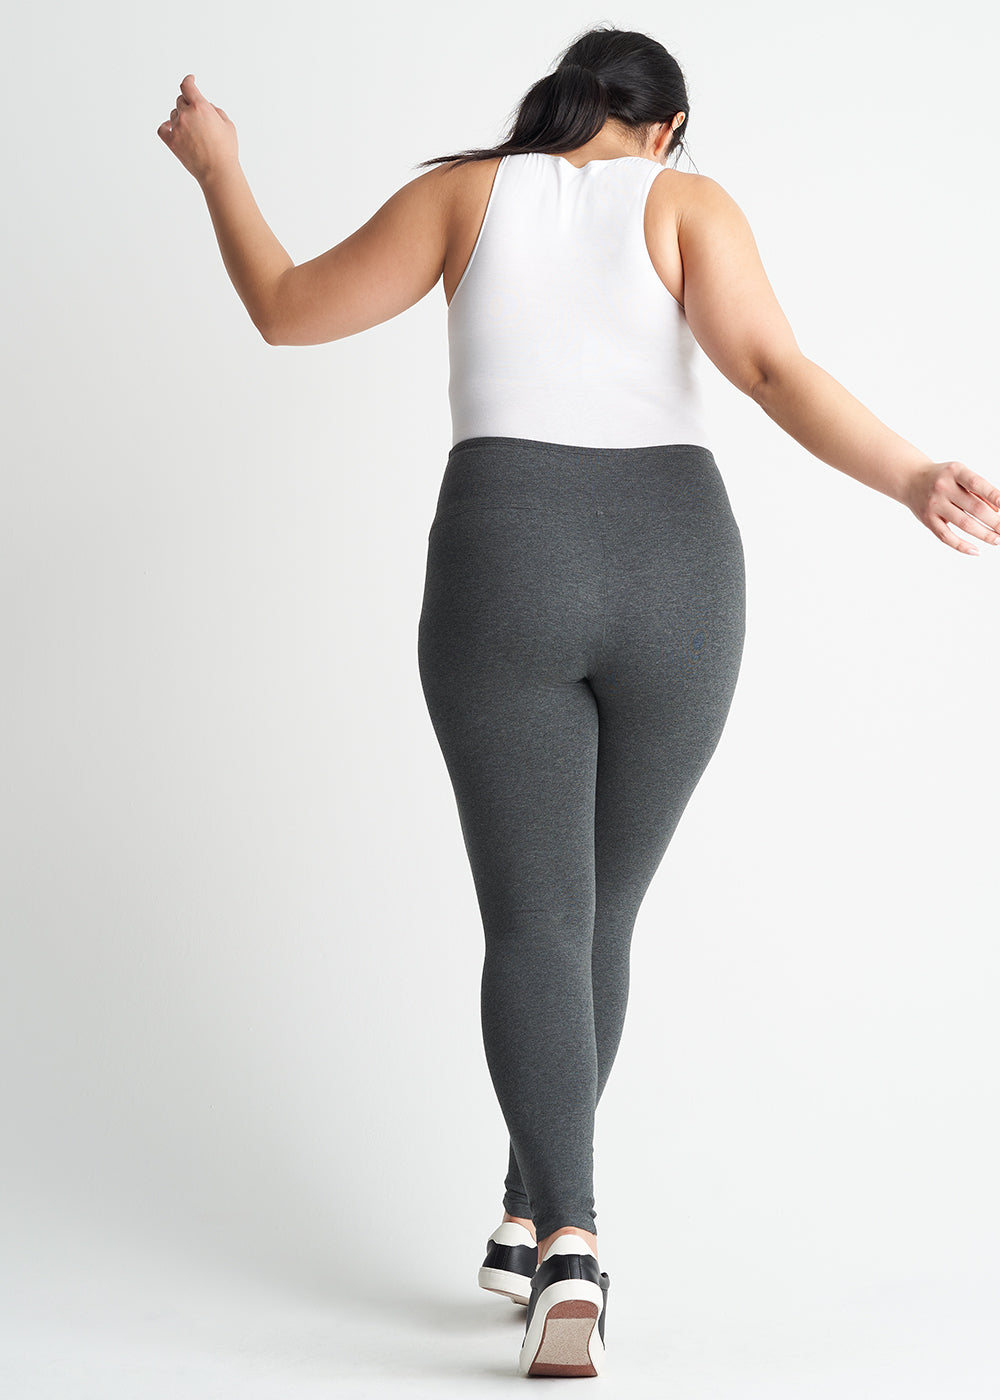 Heather Charcoal | 5' 9"